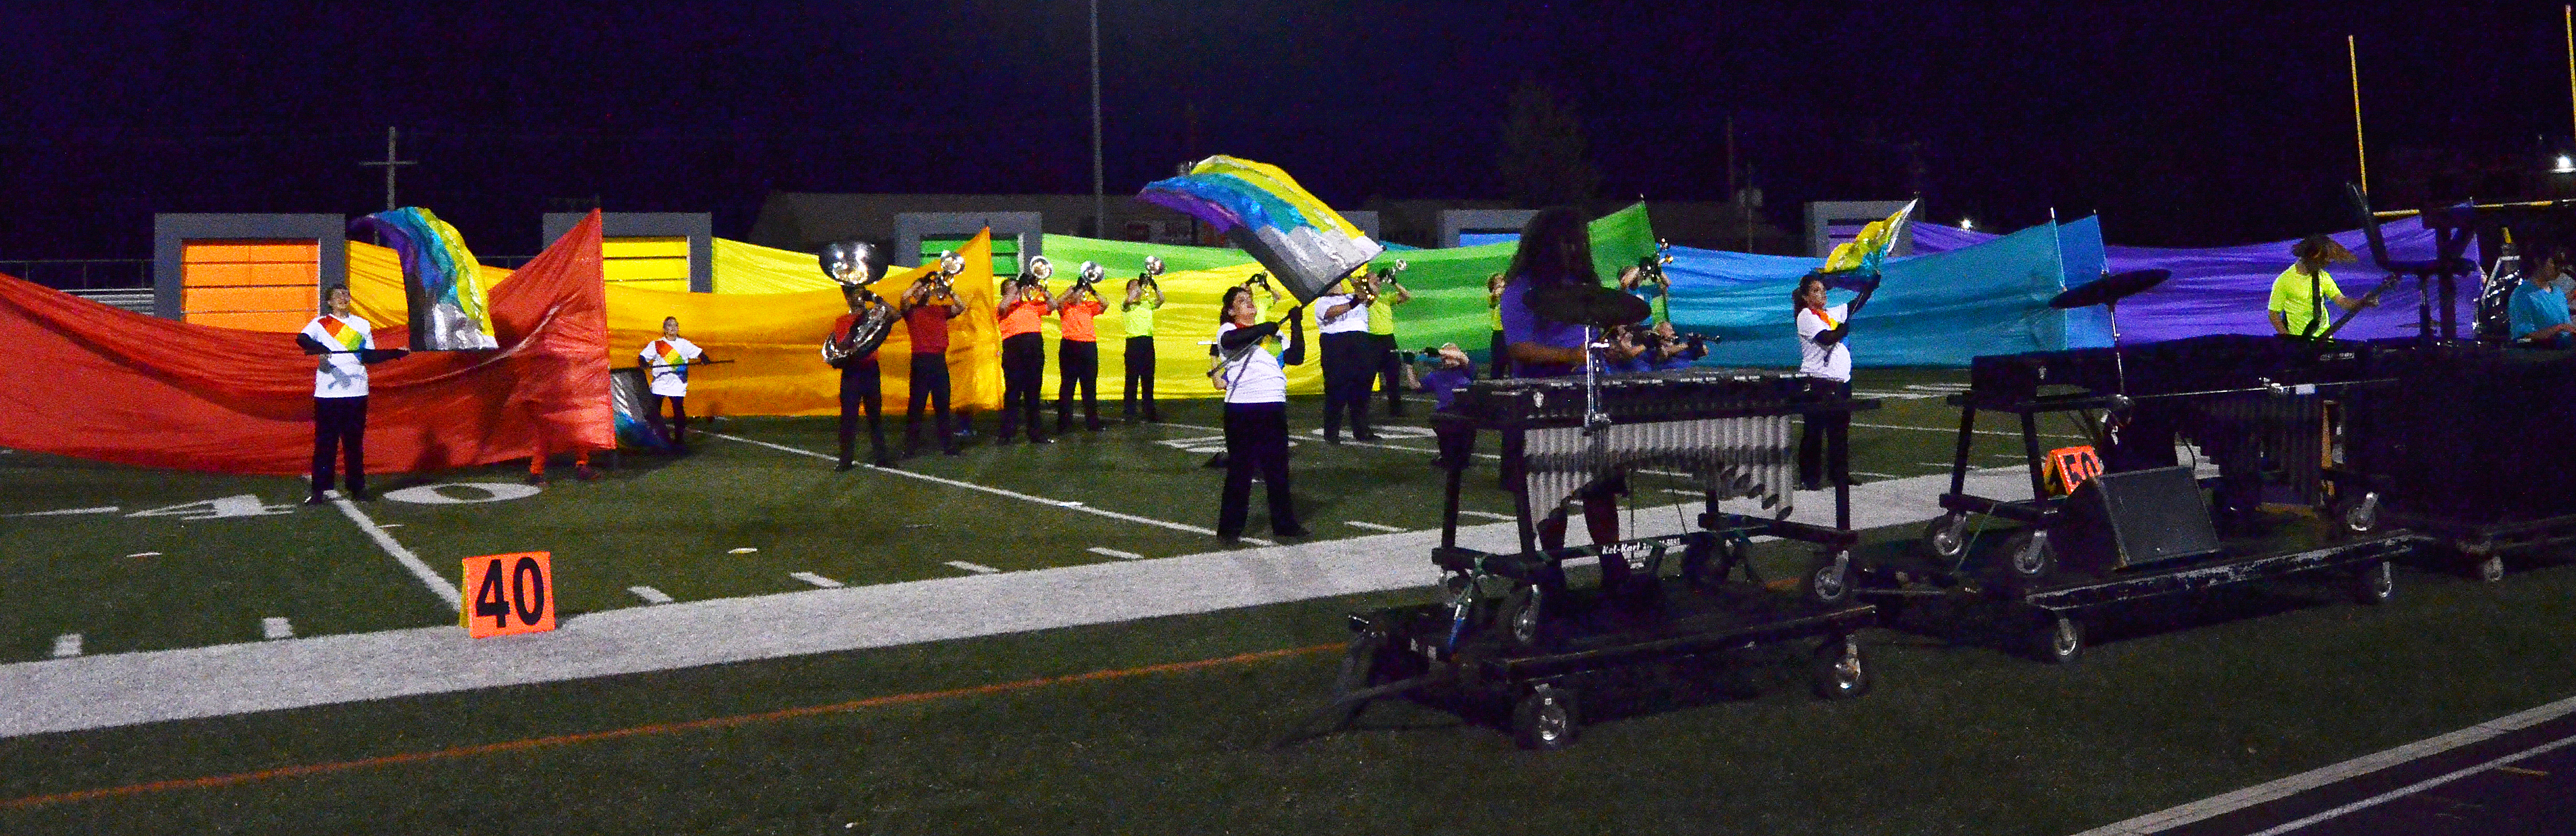 CHS band members perform at the end of their show.